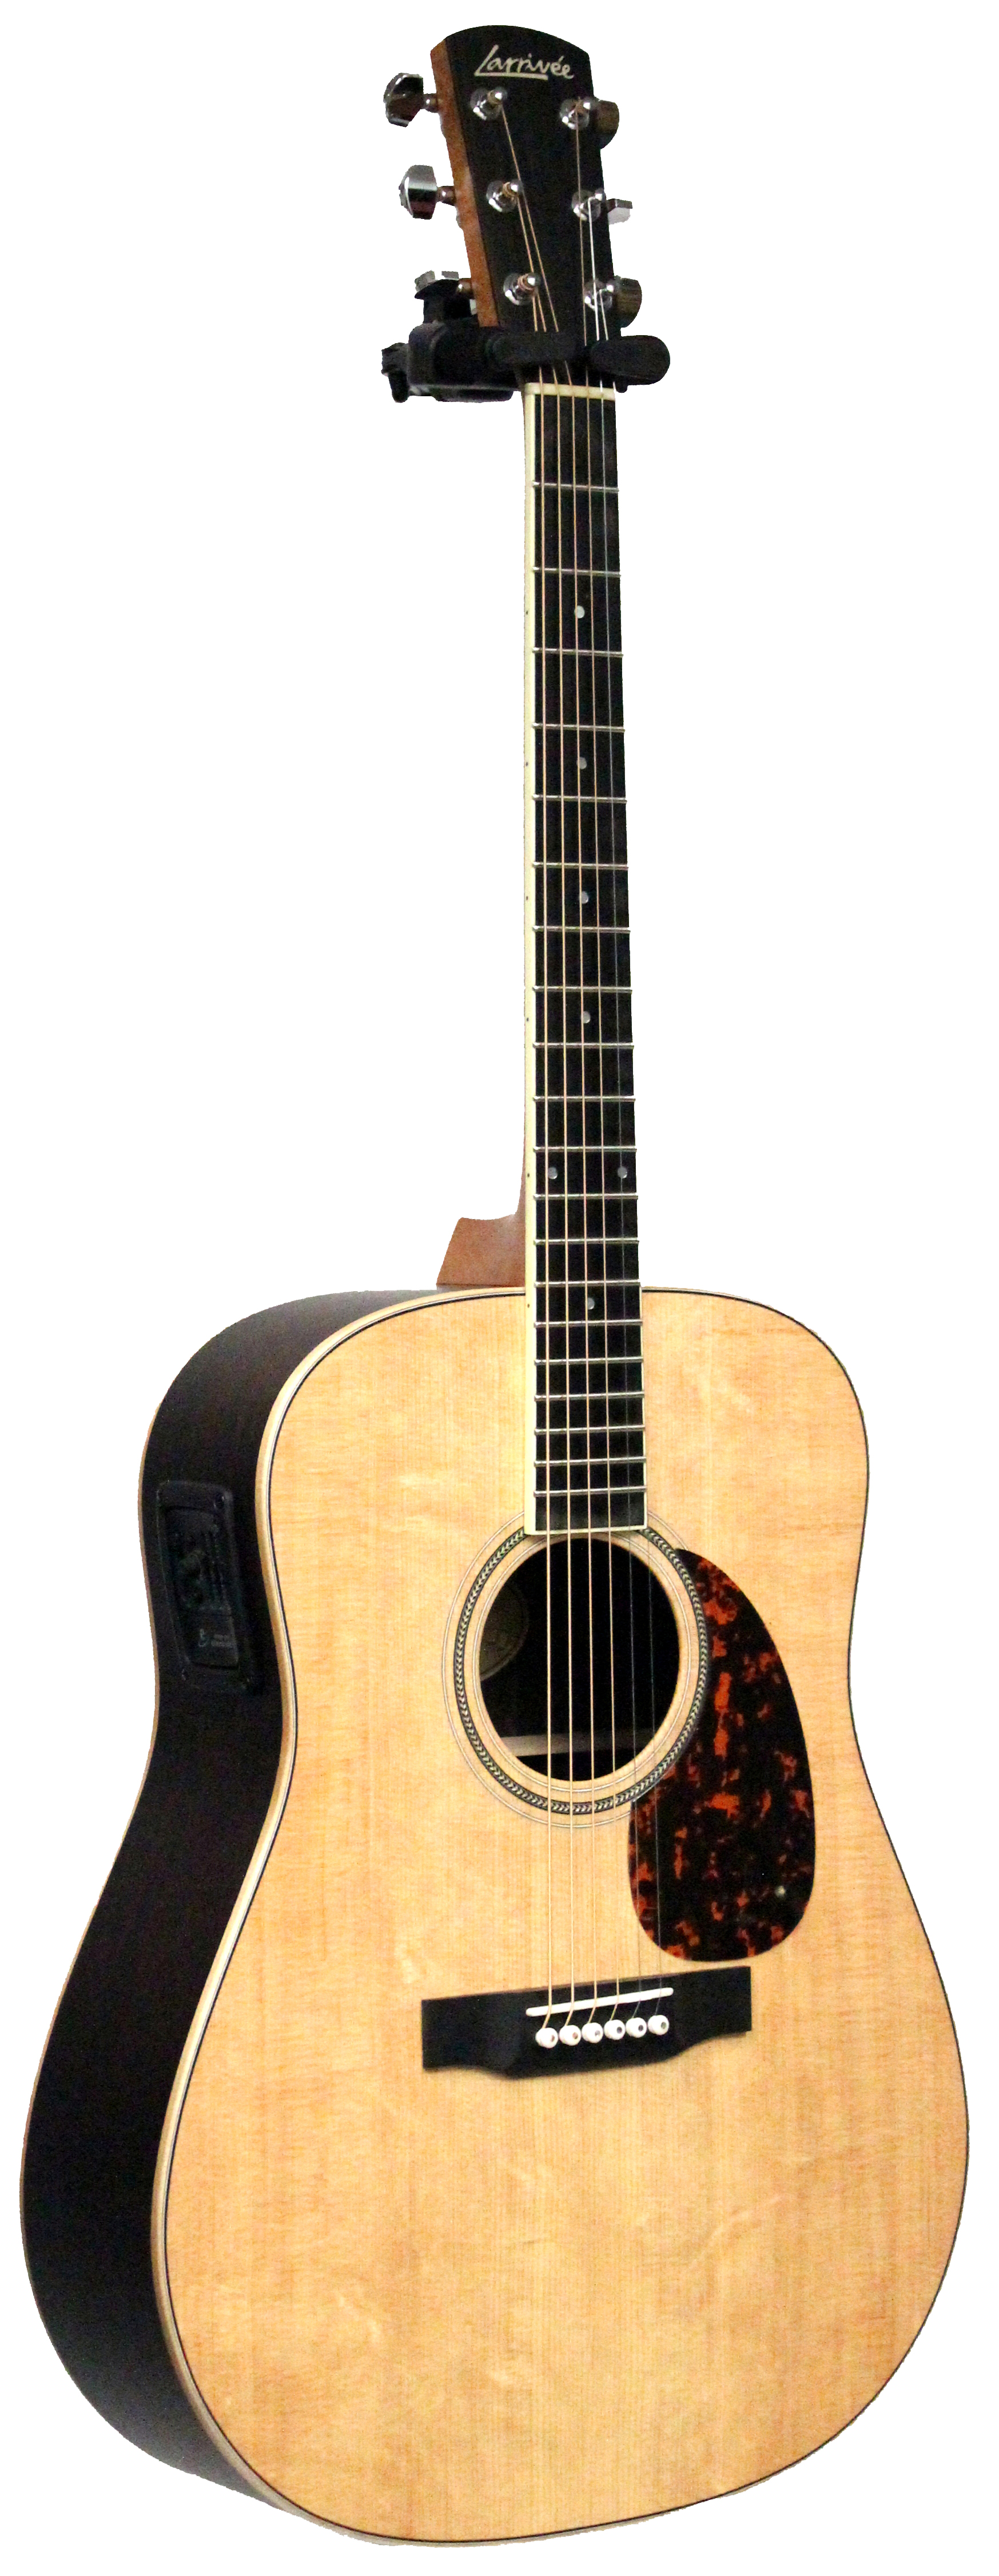 D-03RE Acoustic/Electric Guitar **ON SALE** *All Solid wood Construction<br>*Single Piece Mahogany Neck<br>*Canadian Sitka Spruce Sound Board & Bracing<br>*African Ebony Fretboard & Bridge <br>*Canadian Maple Body Binding <br>*Rosewood Back & Sides <br>*Symmetrical Parabolic X-Bracing <br>*Hand fit Dovetail Neck Joint <br>*Rounded Larrivee Headstock<br>*White Inlaid Larrivee Logo <br>*Herringbone Inlaid Rosette <br>*Ping Tuners w/ 18:1 Ratio <br>*Ivoroid Fretboard Binding <br>*Exclusive Beveled Tortis pickguard <br>*Microdot Fretboard Markers <br>*Limited Lifetime warranty <br>*L.R.  Baggs Stagepro Element system (Single Source)<br>*case included<br><br>COMPARE AT REGULAR PRICE: $1975